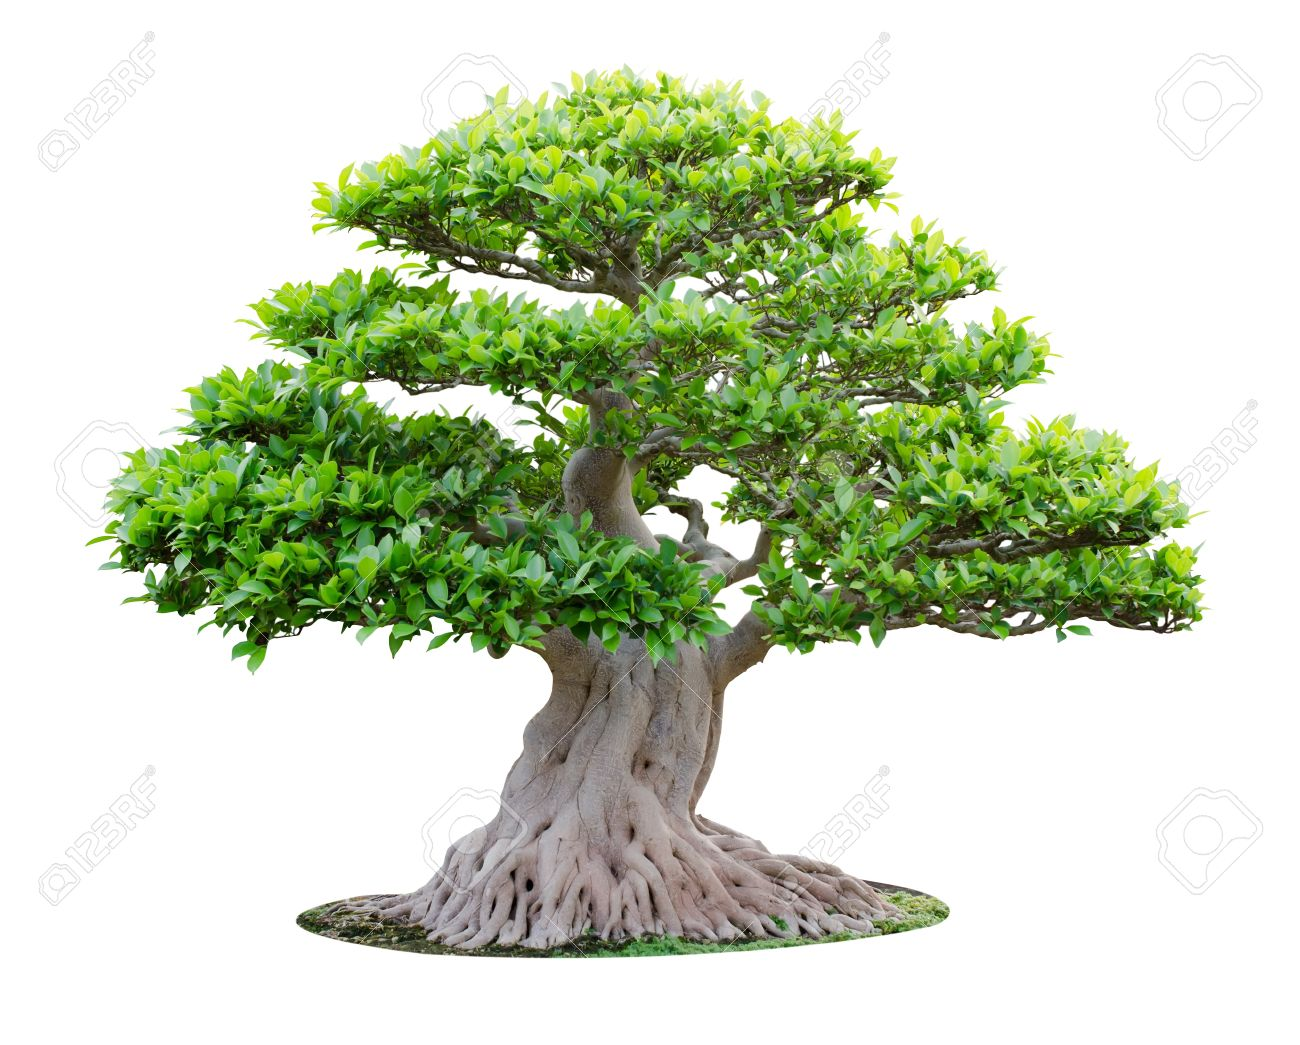 Big Bonsai Tree Isolated On White Background Stock Photo Picture And Royalty Free Image Image 12986135